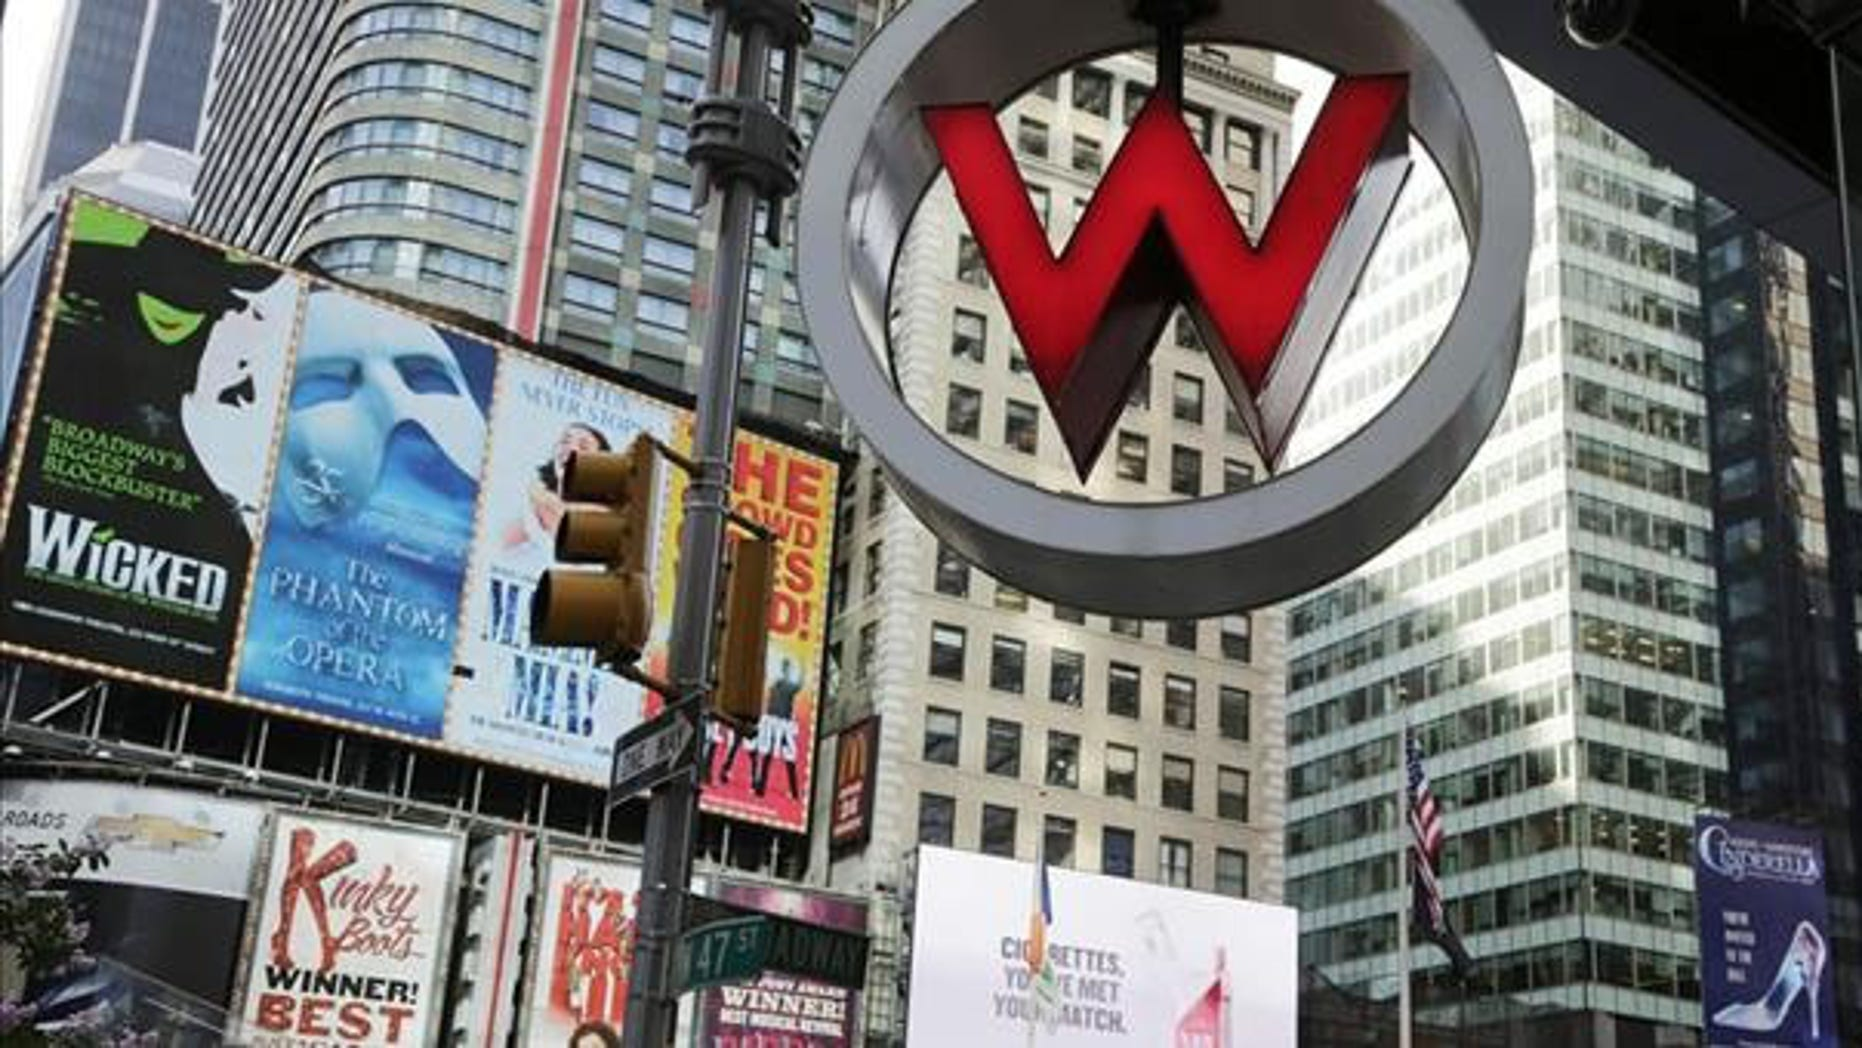 While Marriott stands to gain the most from the deal, other winners and some losers have already emerged.